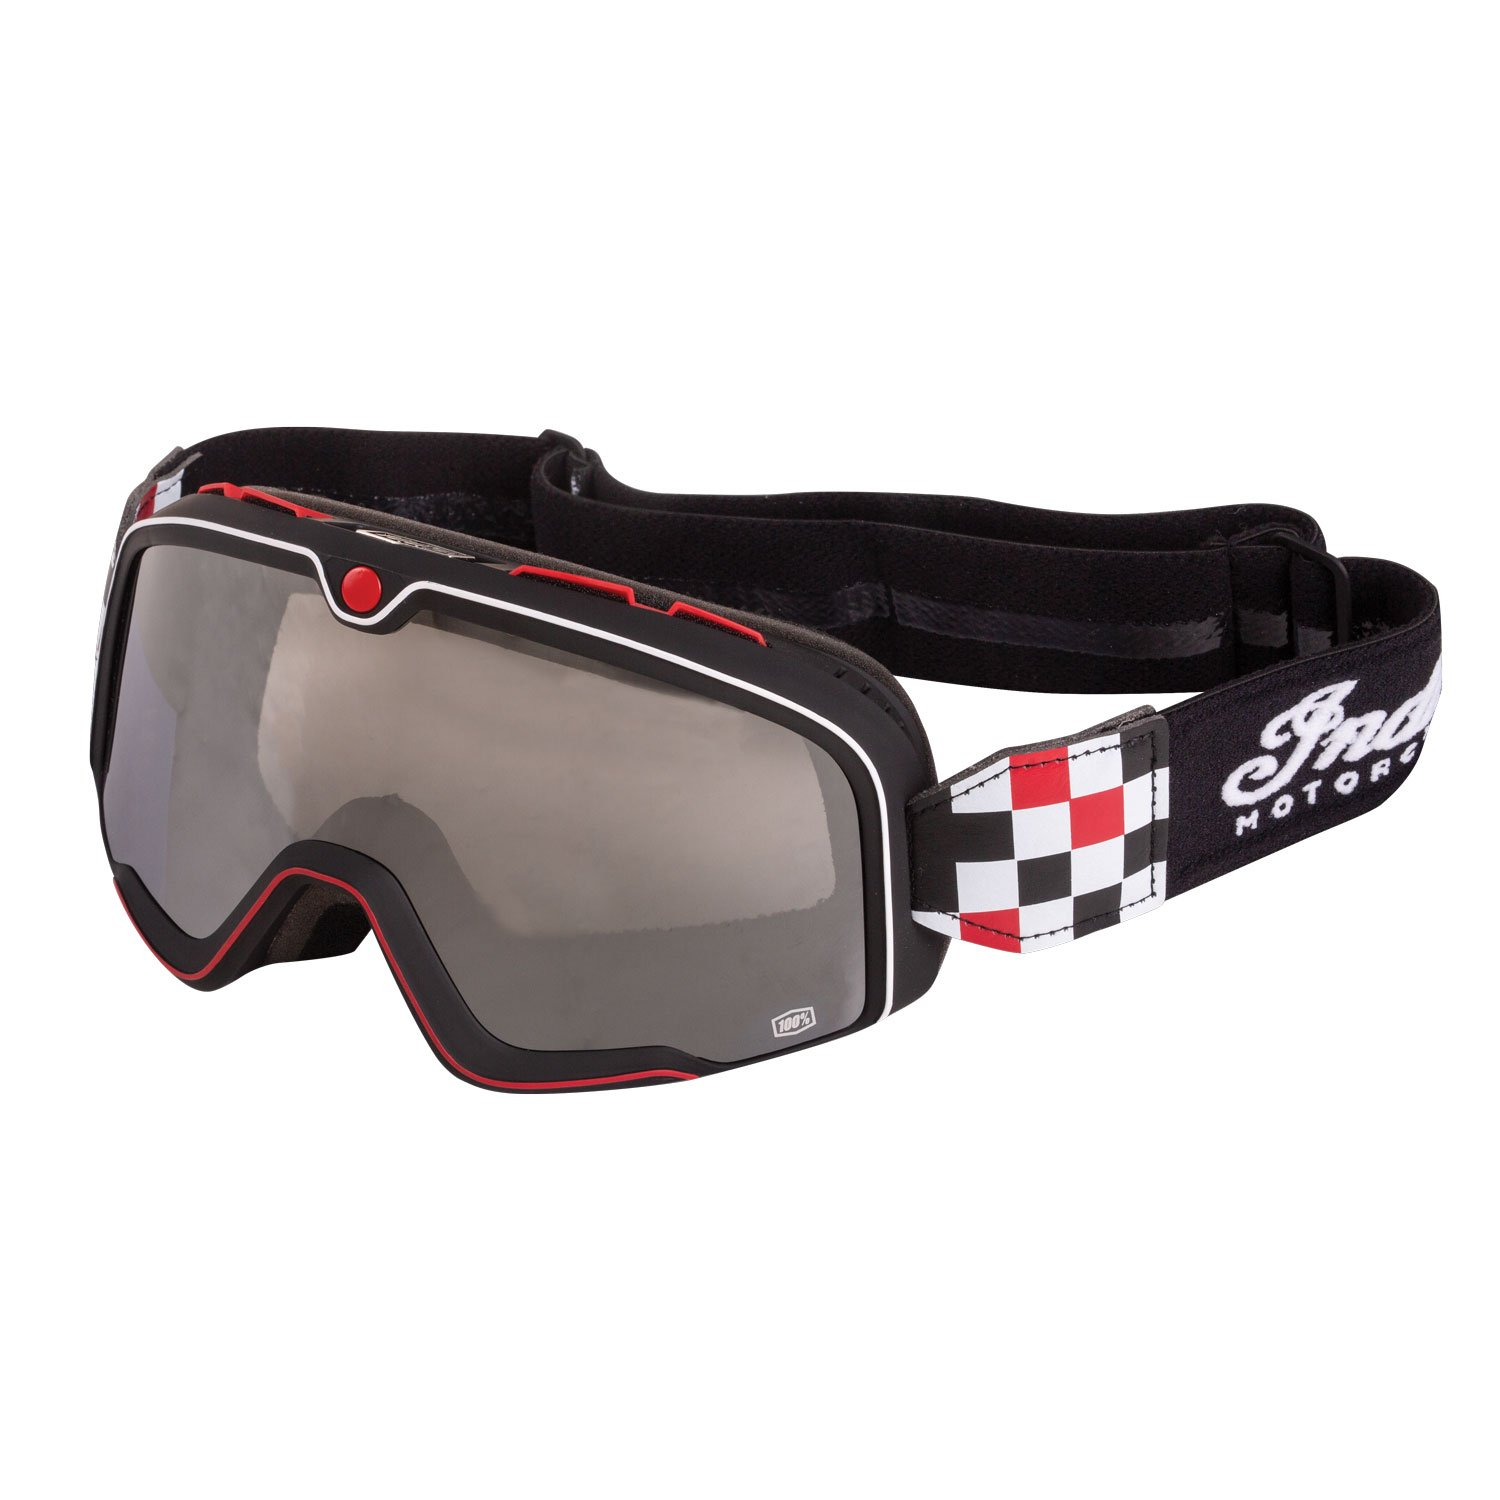 Coste Checkered Performance Goggle, Black